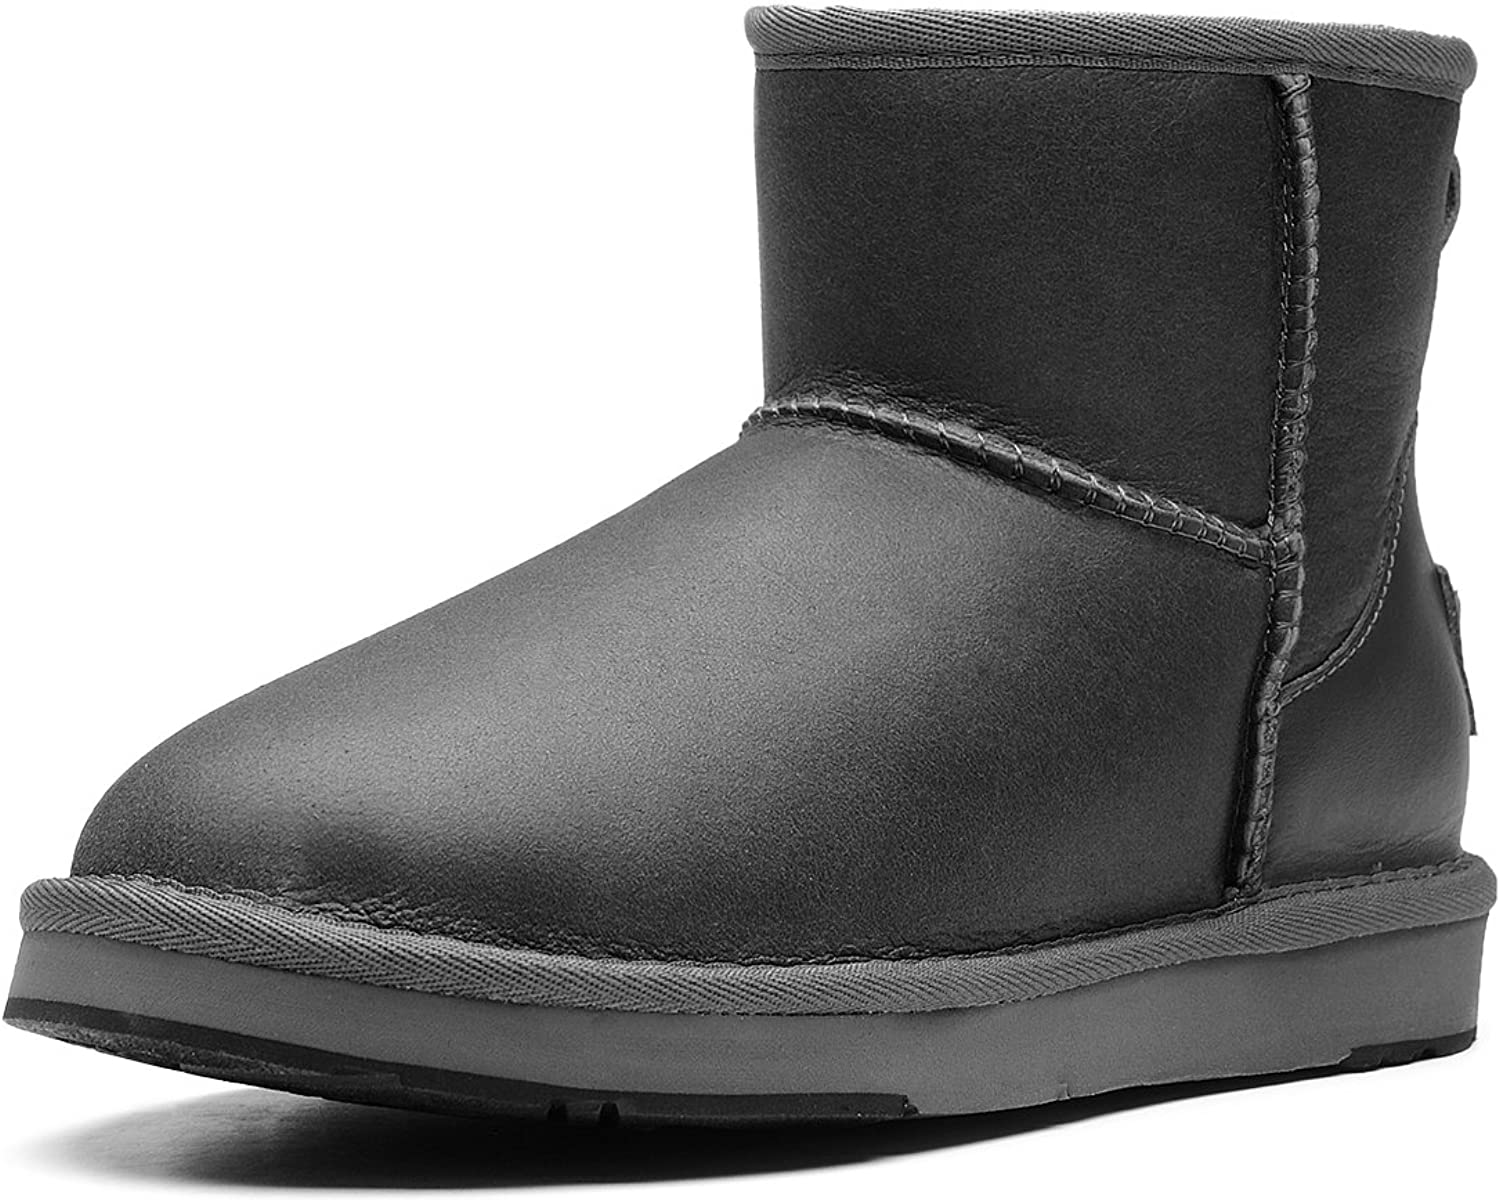 AU&MU Aumu Womens Warm Classic Sheapskin Snow Boots Black